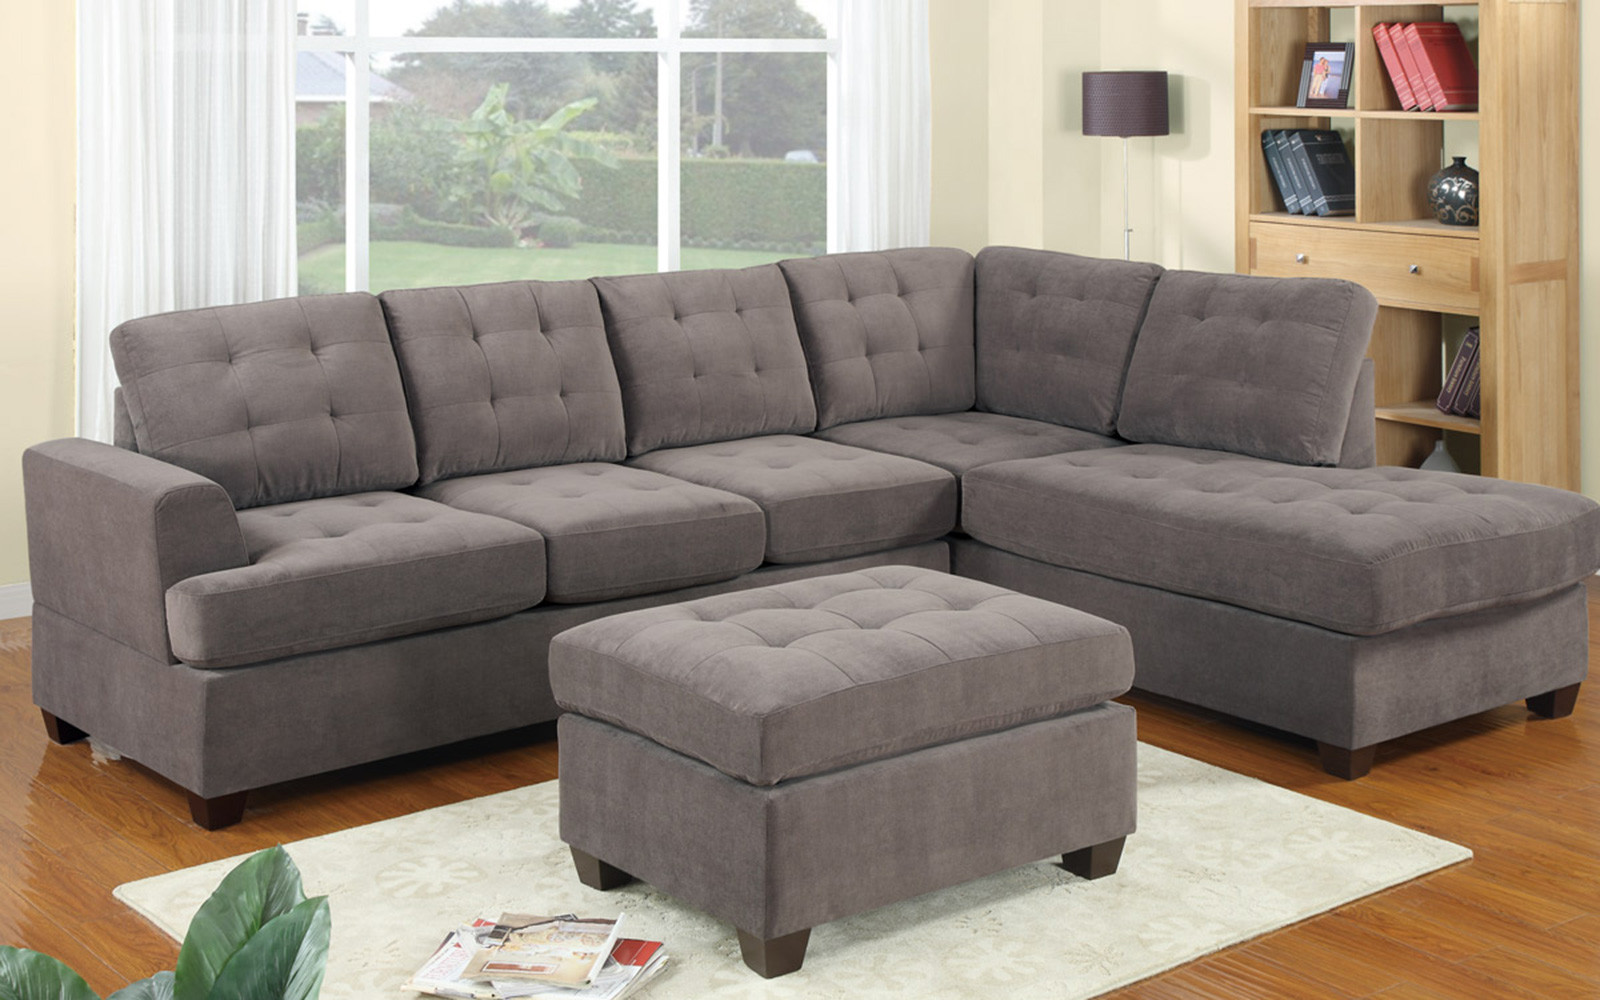 2 Piece Modern Reversible Grey Tufted Microfiber Sectional Sofa with